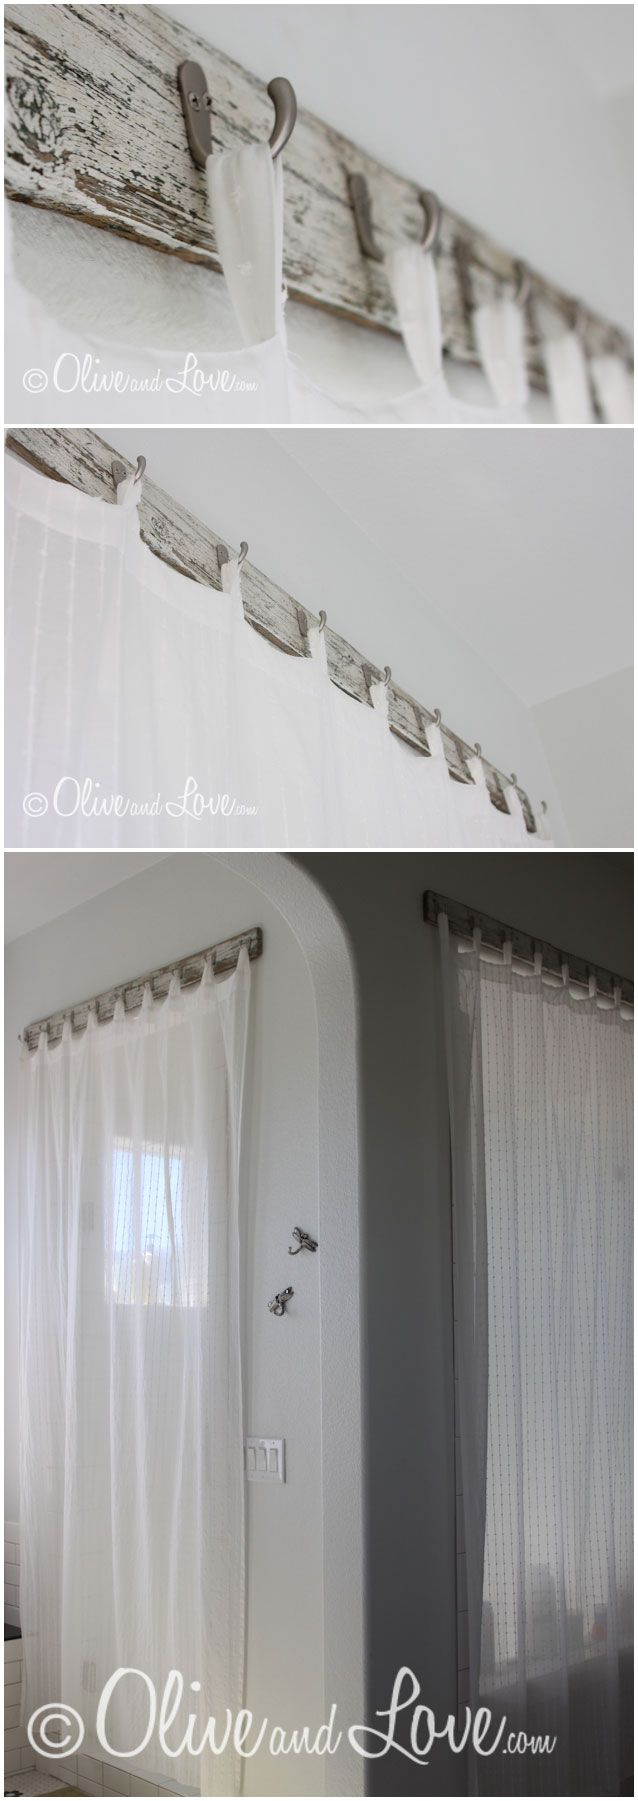 Hang curtains the new way! Scrap wood from an old bench, cheap hooks from Home Depot & sheer curtains from IKEA